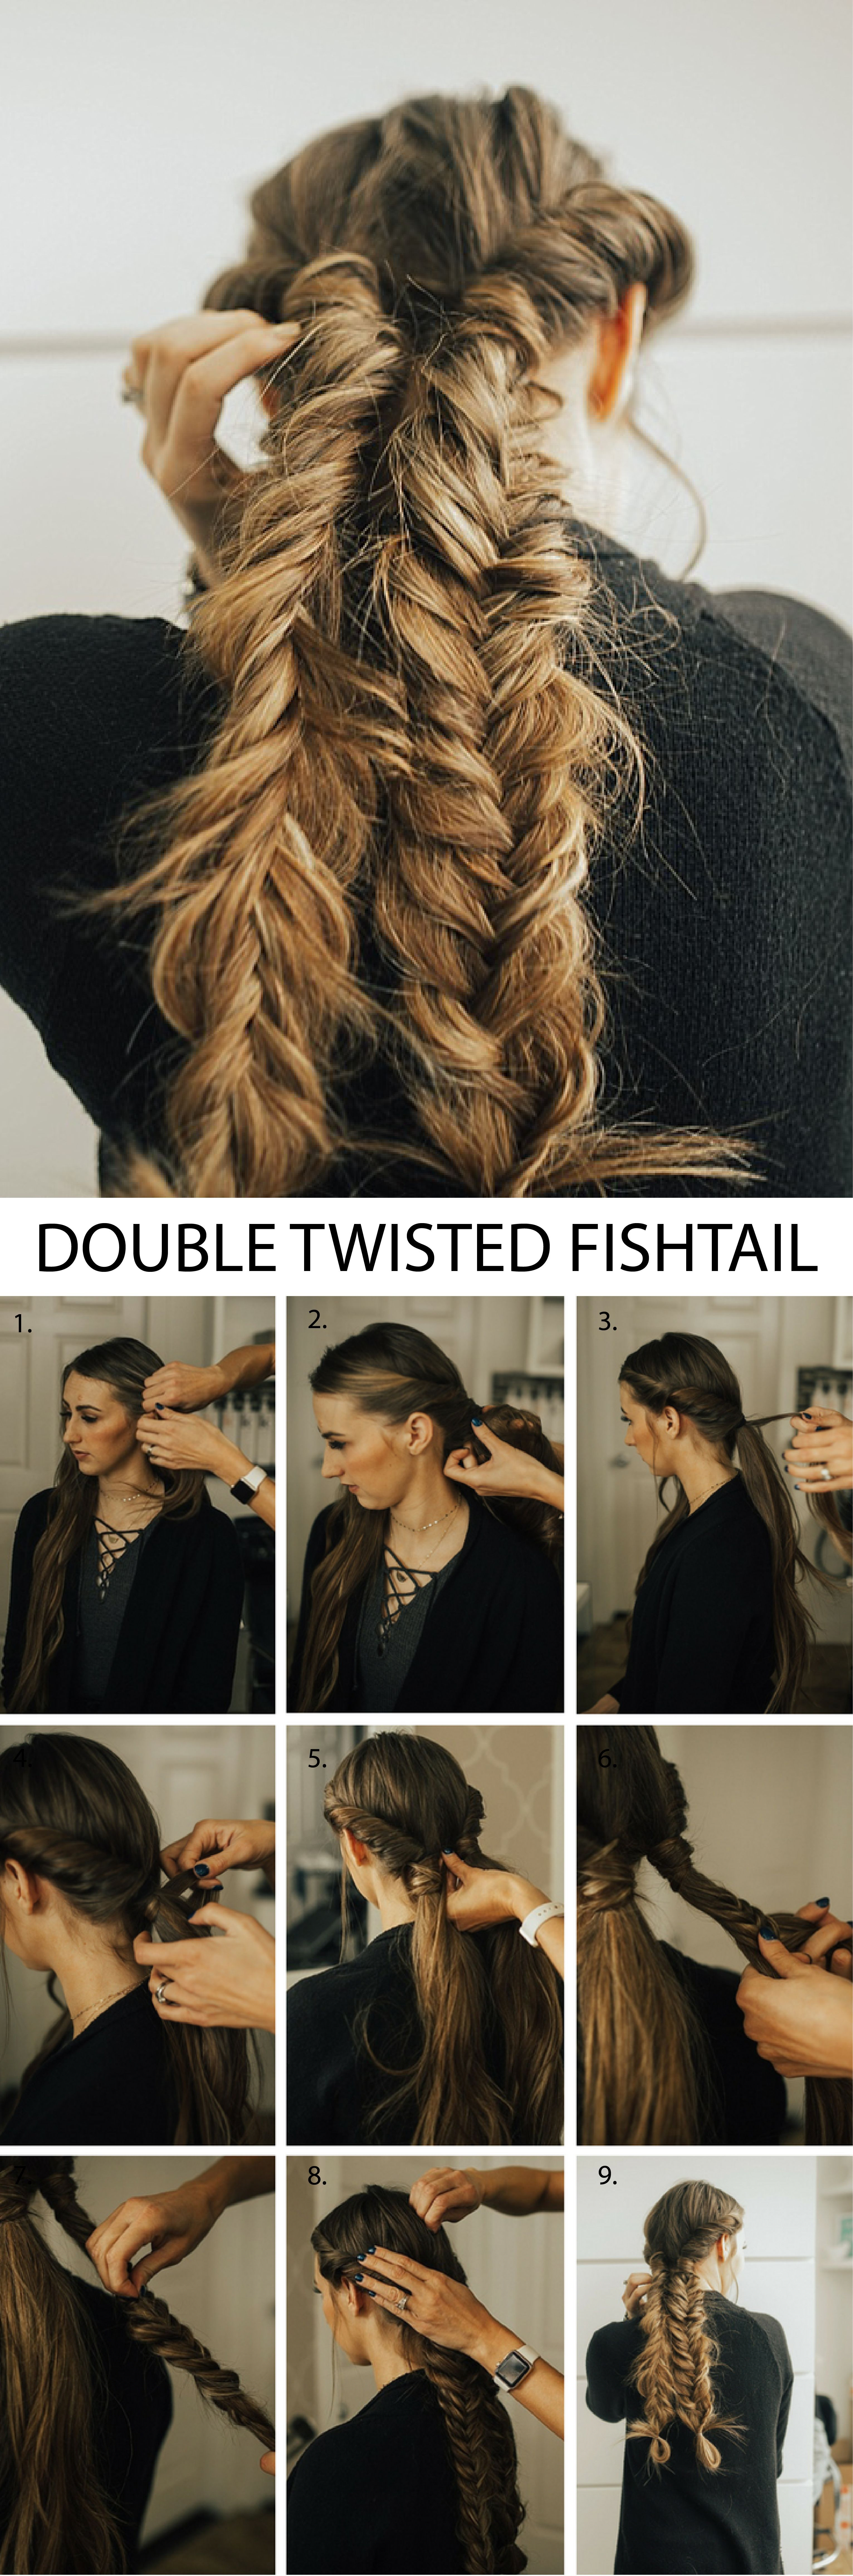 Double Twisted Fishtail Fishtail Plaits Fishtail And Hair Style